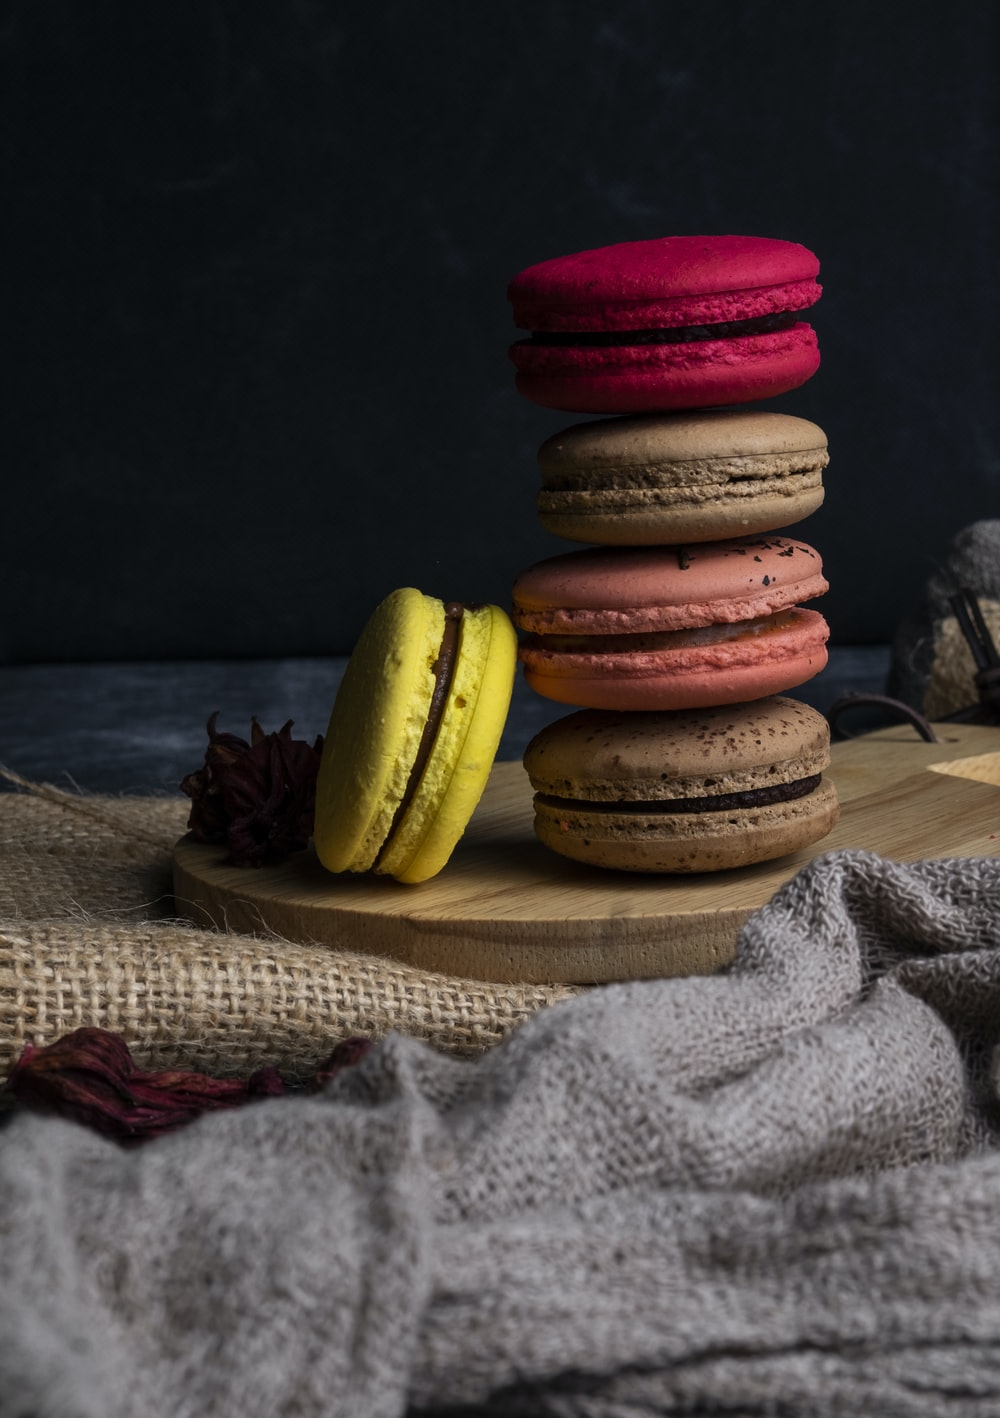 five yellow, red, pink, and brown French macaroons on coaster